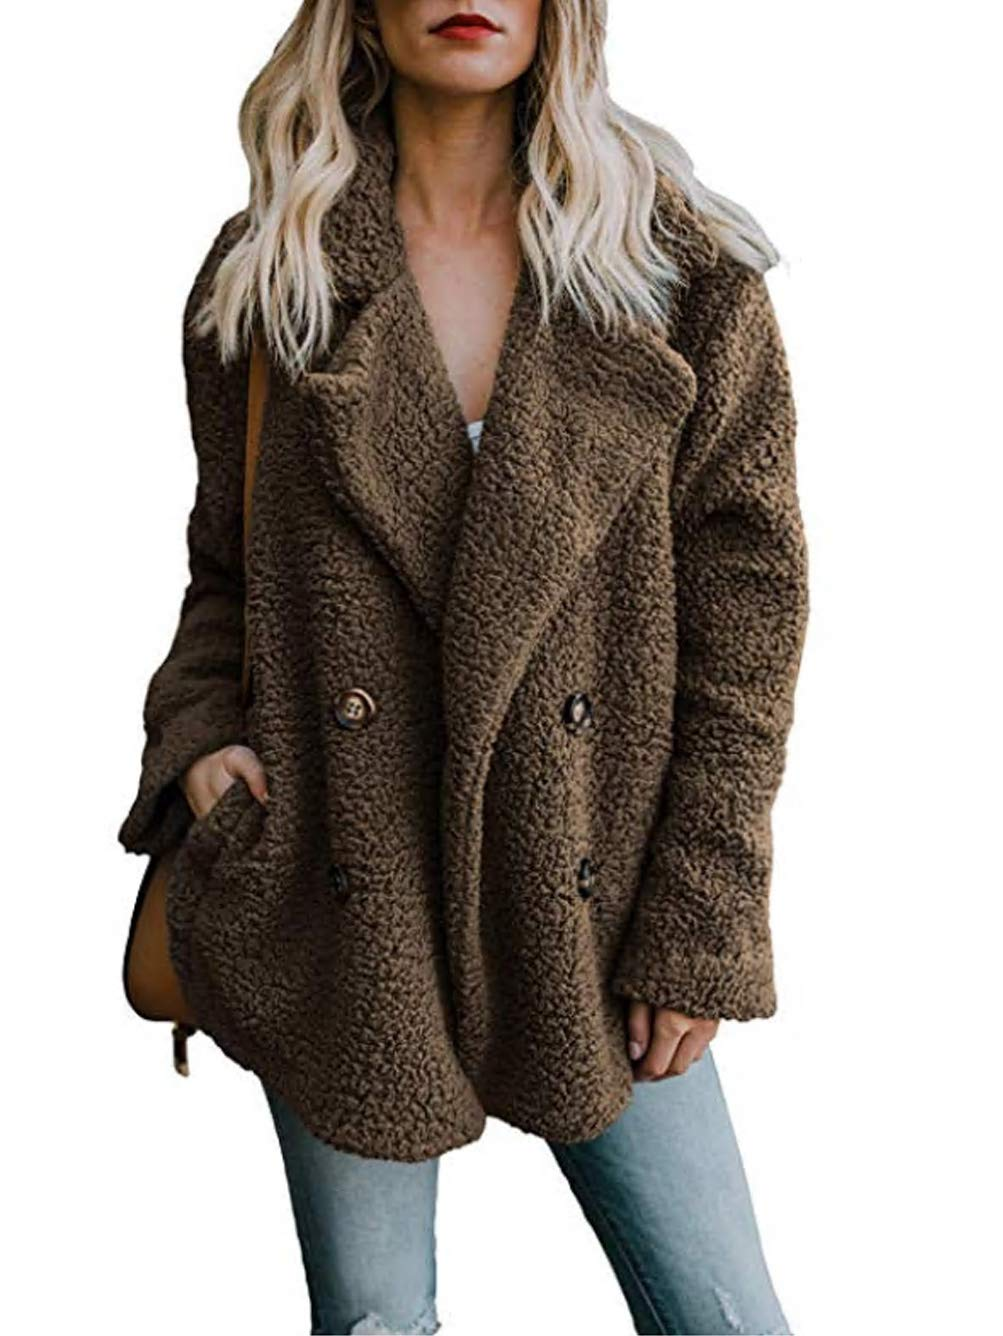 Famulily Women's Plus Size Soft Warm Casual Oversized Long Sleeve Open Front Fuzzy Coat with Pockets Fluffy Outerwear Sweater Coffee X-Large